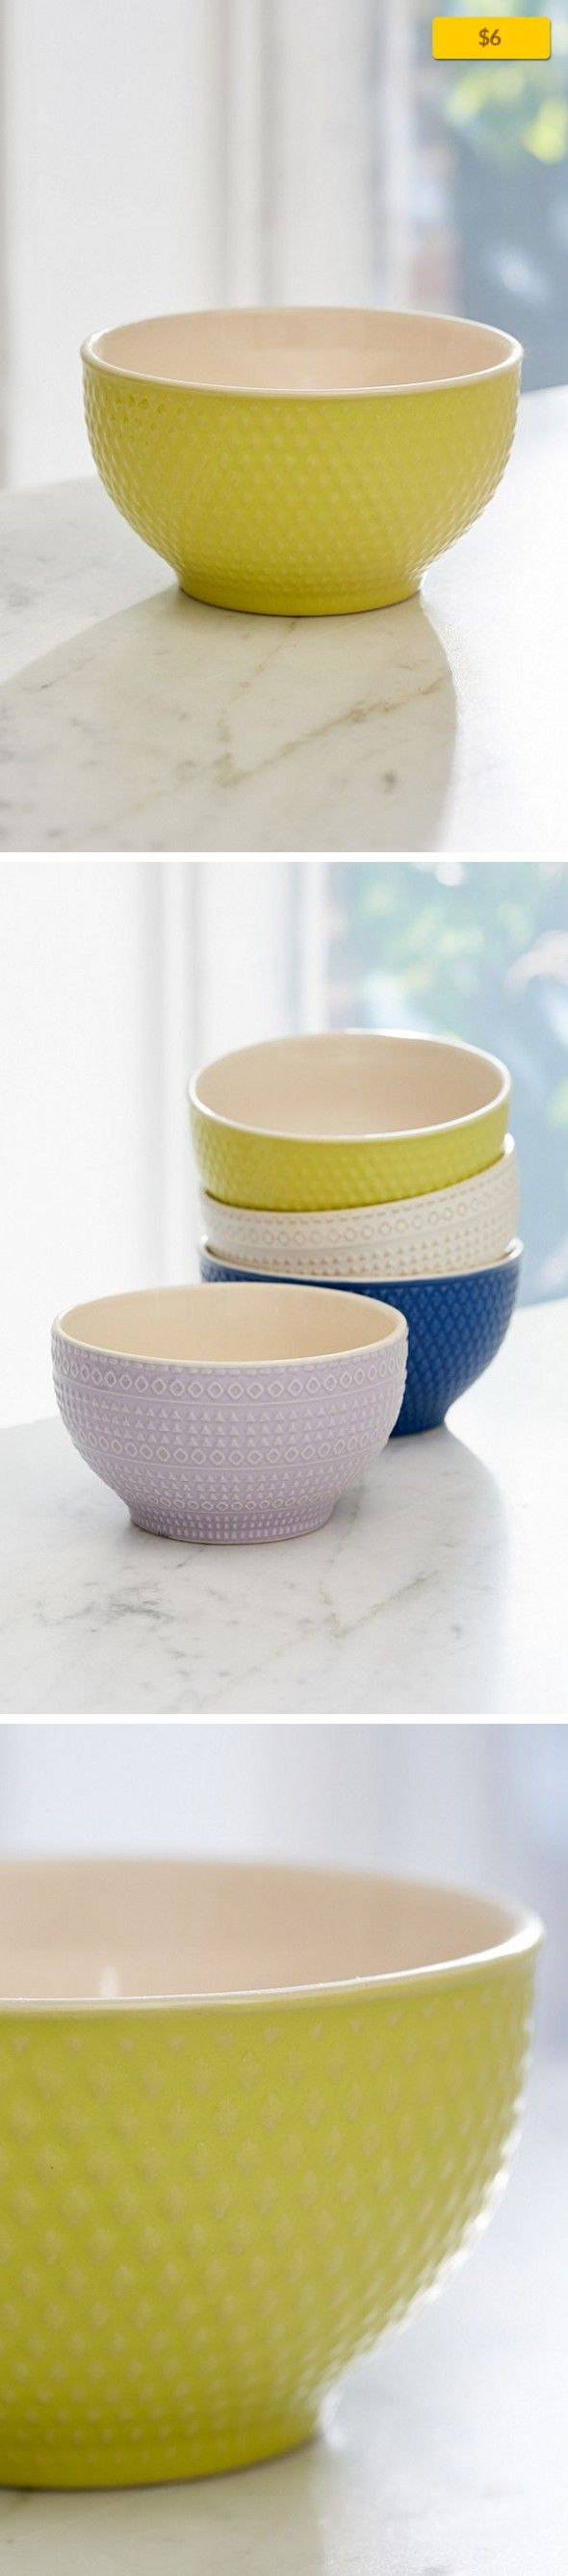 """Embossed Ceramic Bowl Apartment, Kitchen + Bar   Ceramic bowls embossed with assorted geo patterns; get 1 or a few for a charmingly mismatched set! Perfectly sized for cereal, salad, pasta + more. Microwave safe + food safe; not suitable for the oven or dishwasher. Content + Care - Ceramic - Hand wash - Imported Size - Diameter: 5"""""""